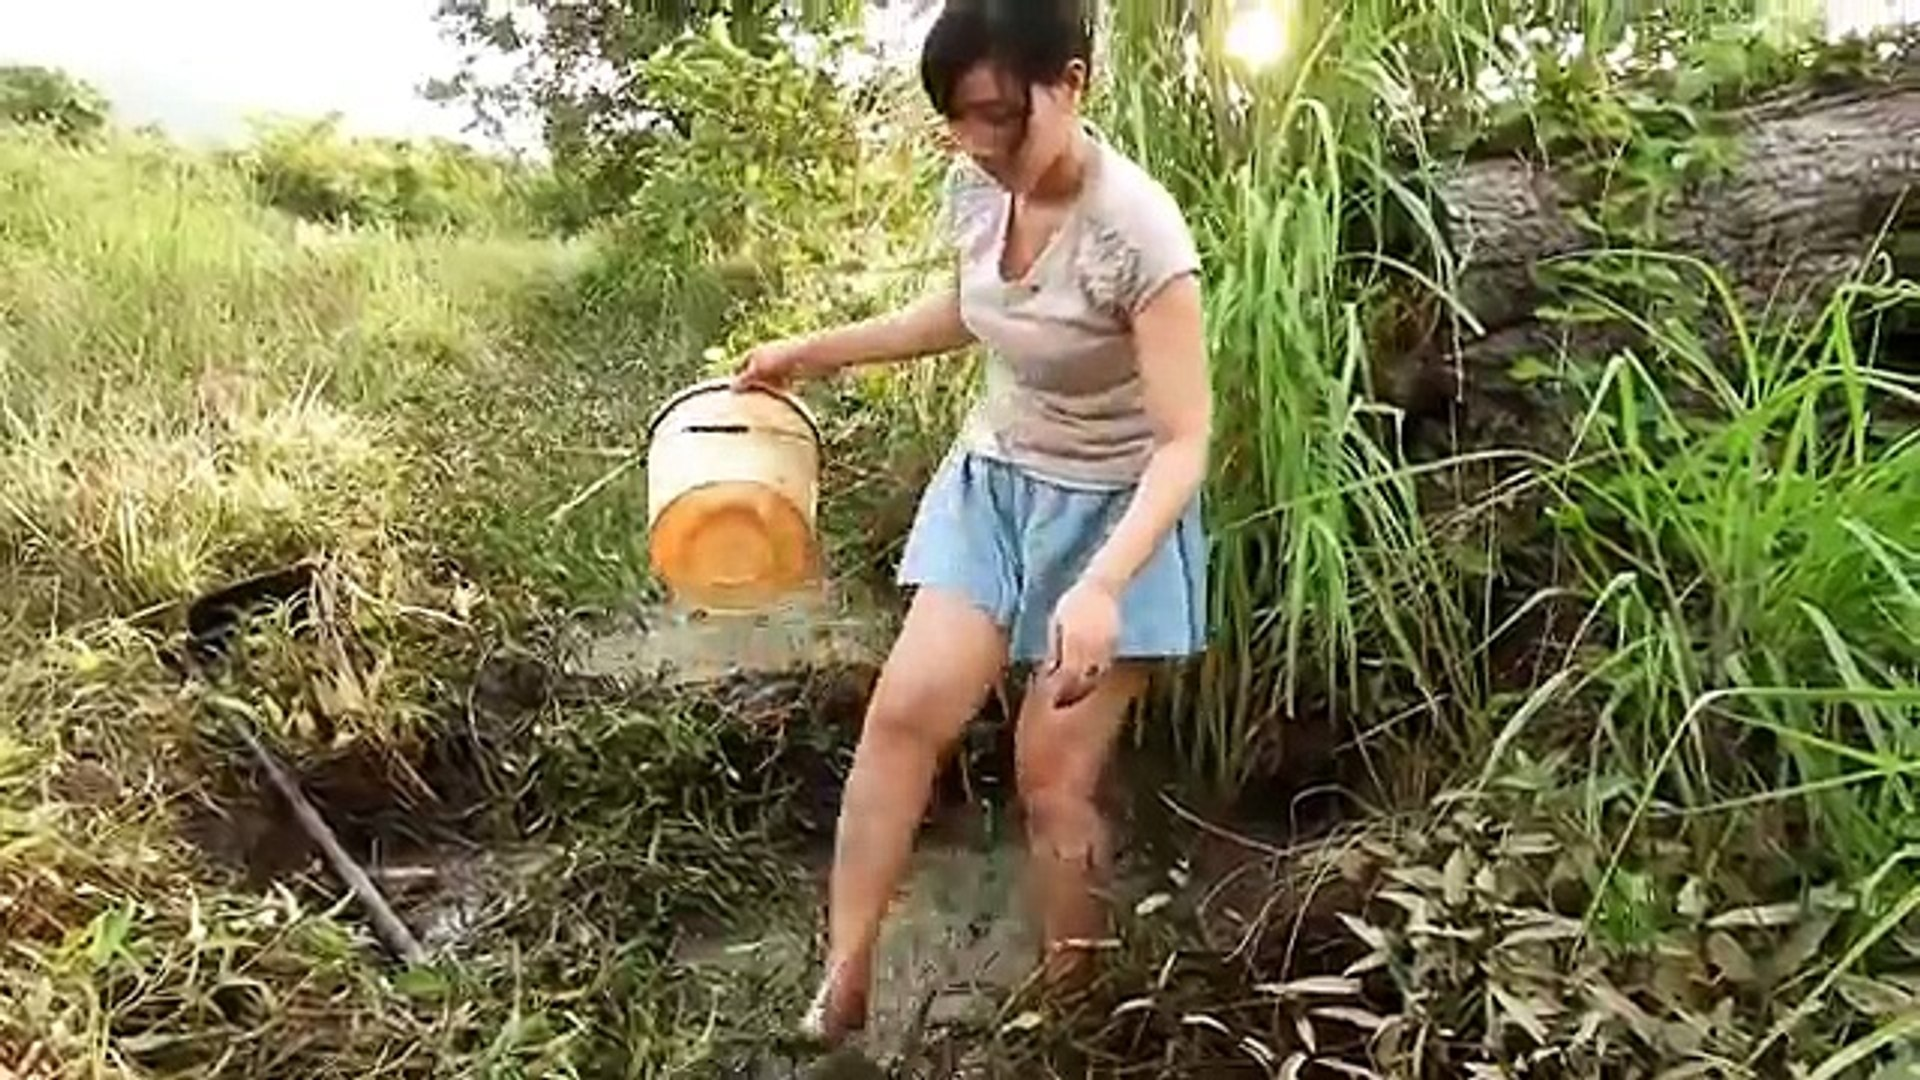 Two pretty girls catch fish - How To catch fish by hand - Fishing is very happy ( part 247 )